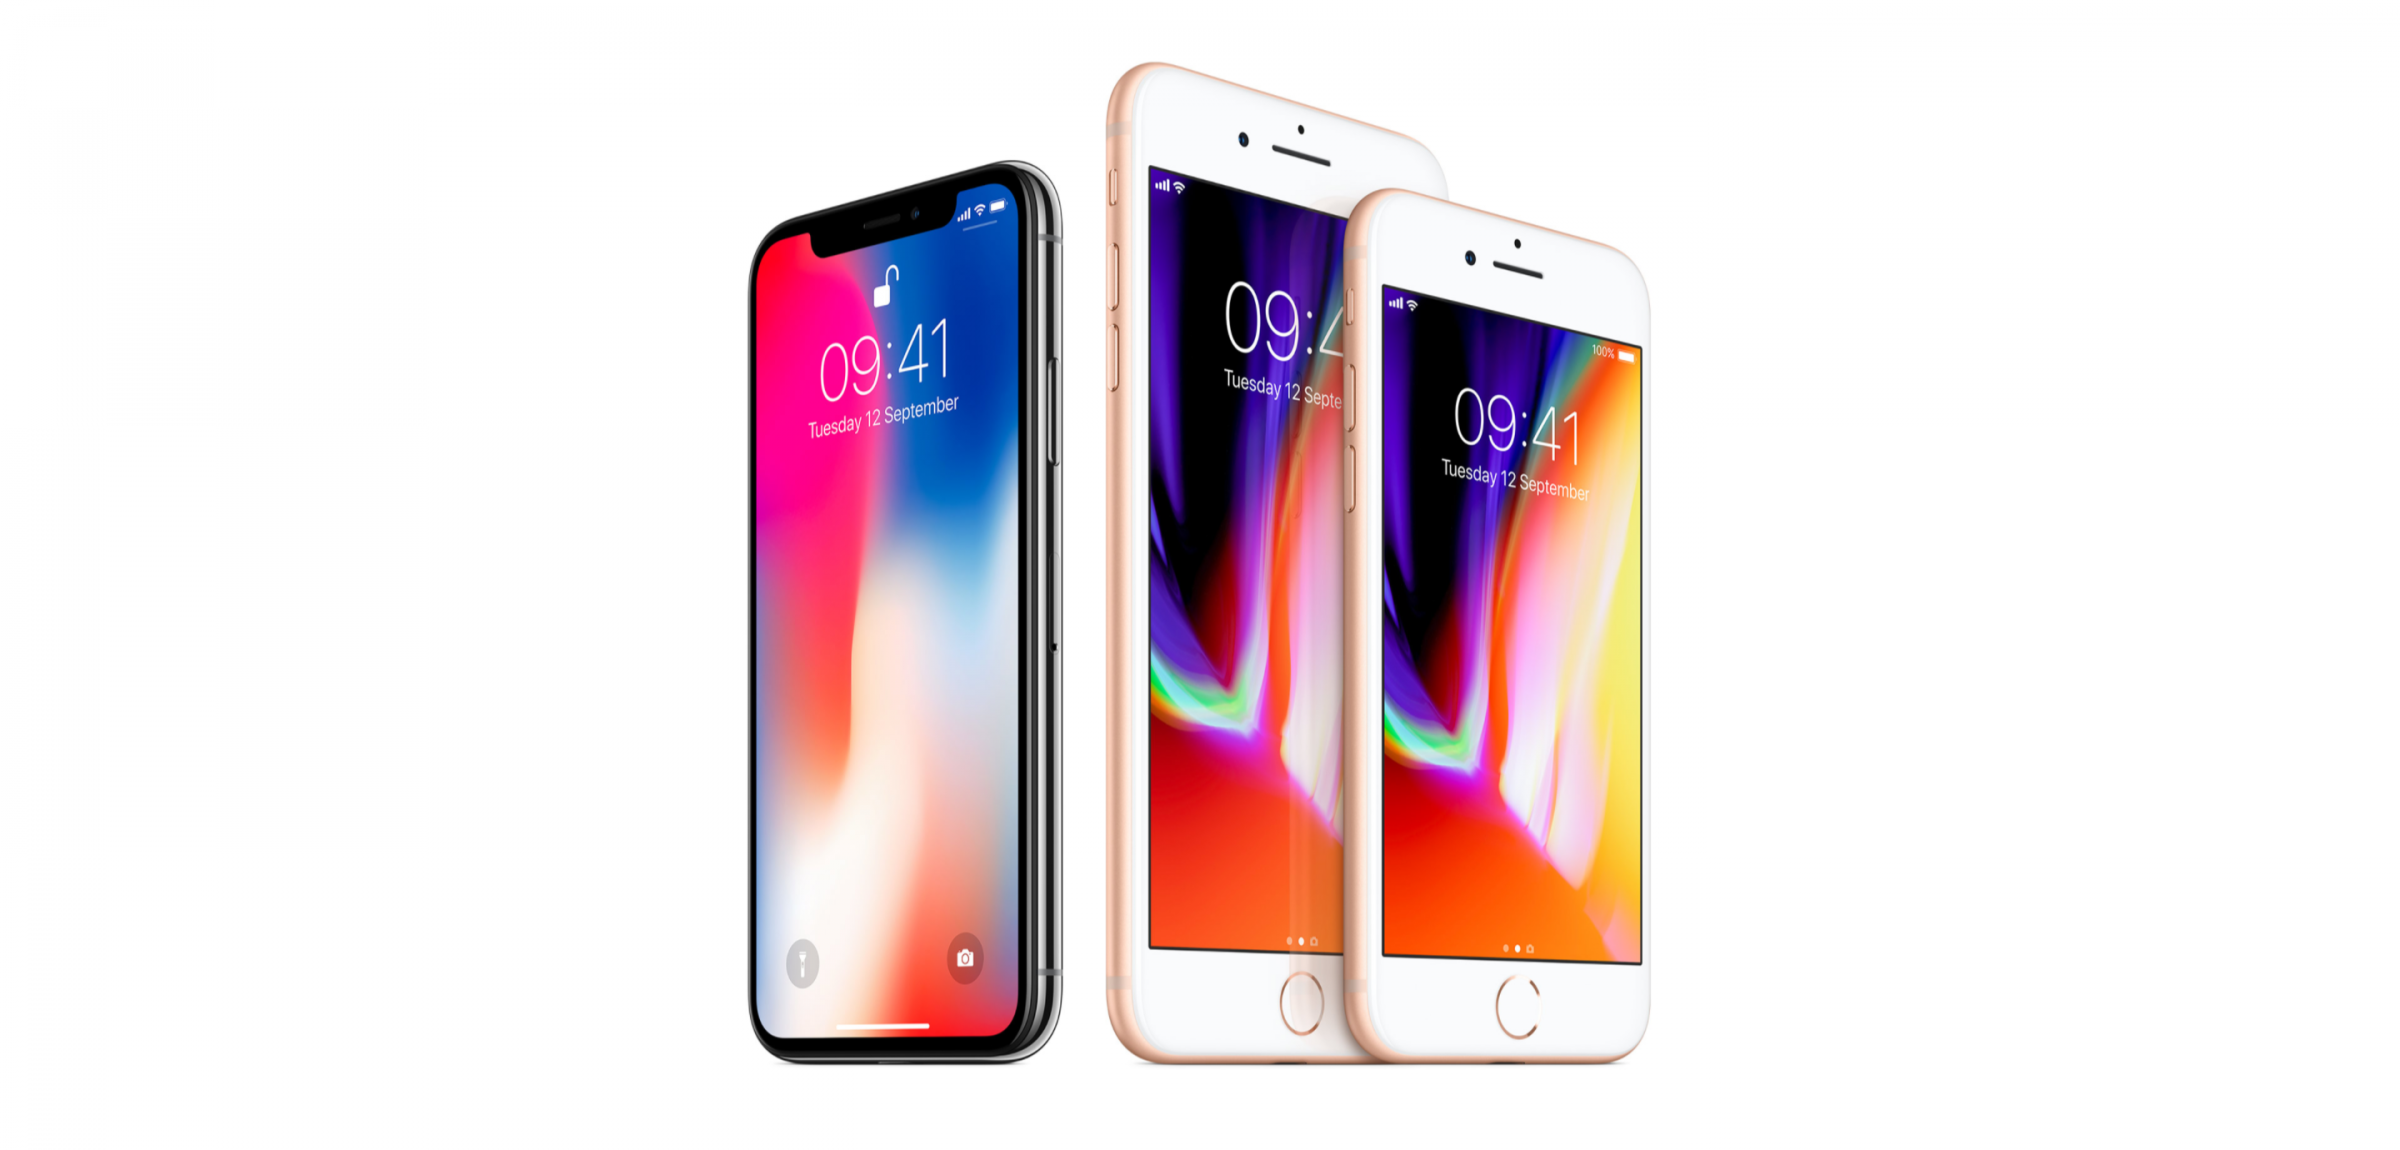 Top 5 iPhone X Features